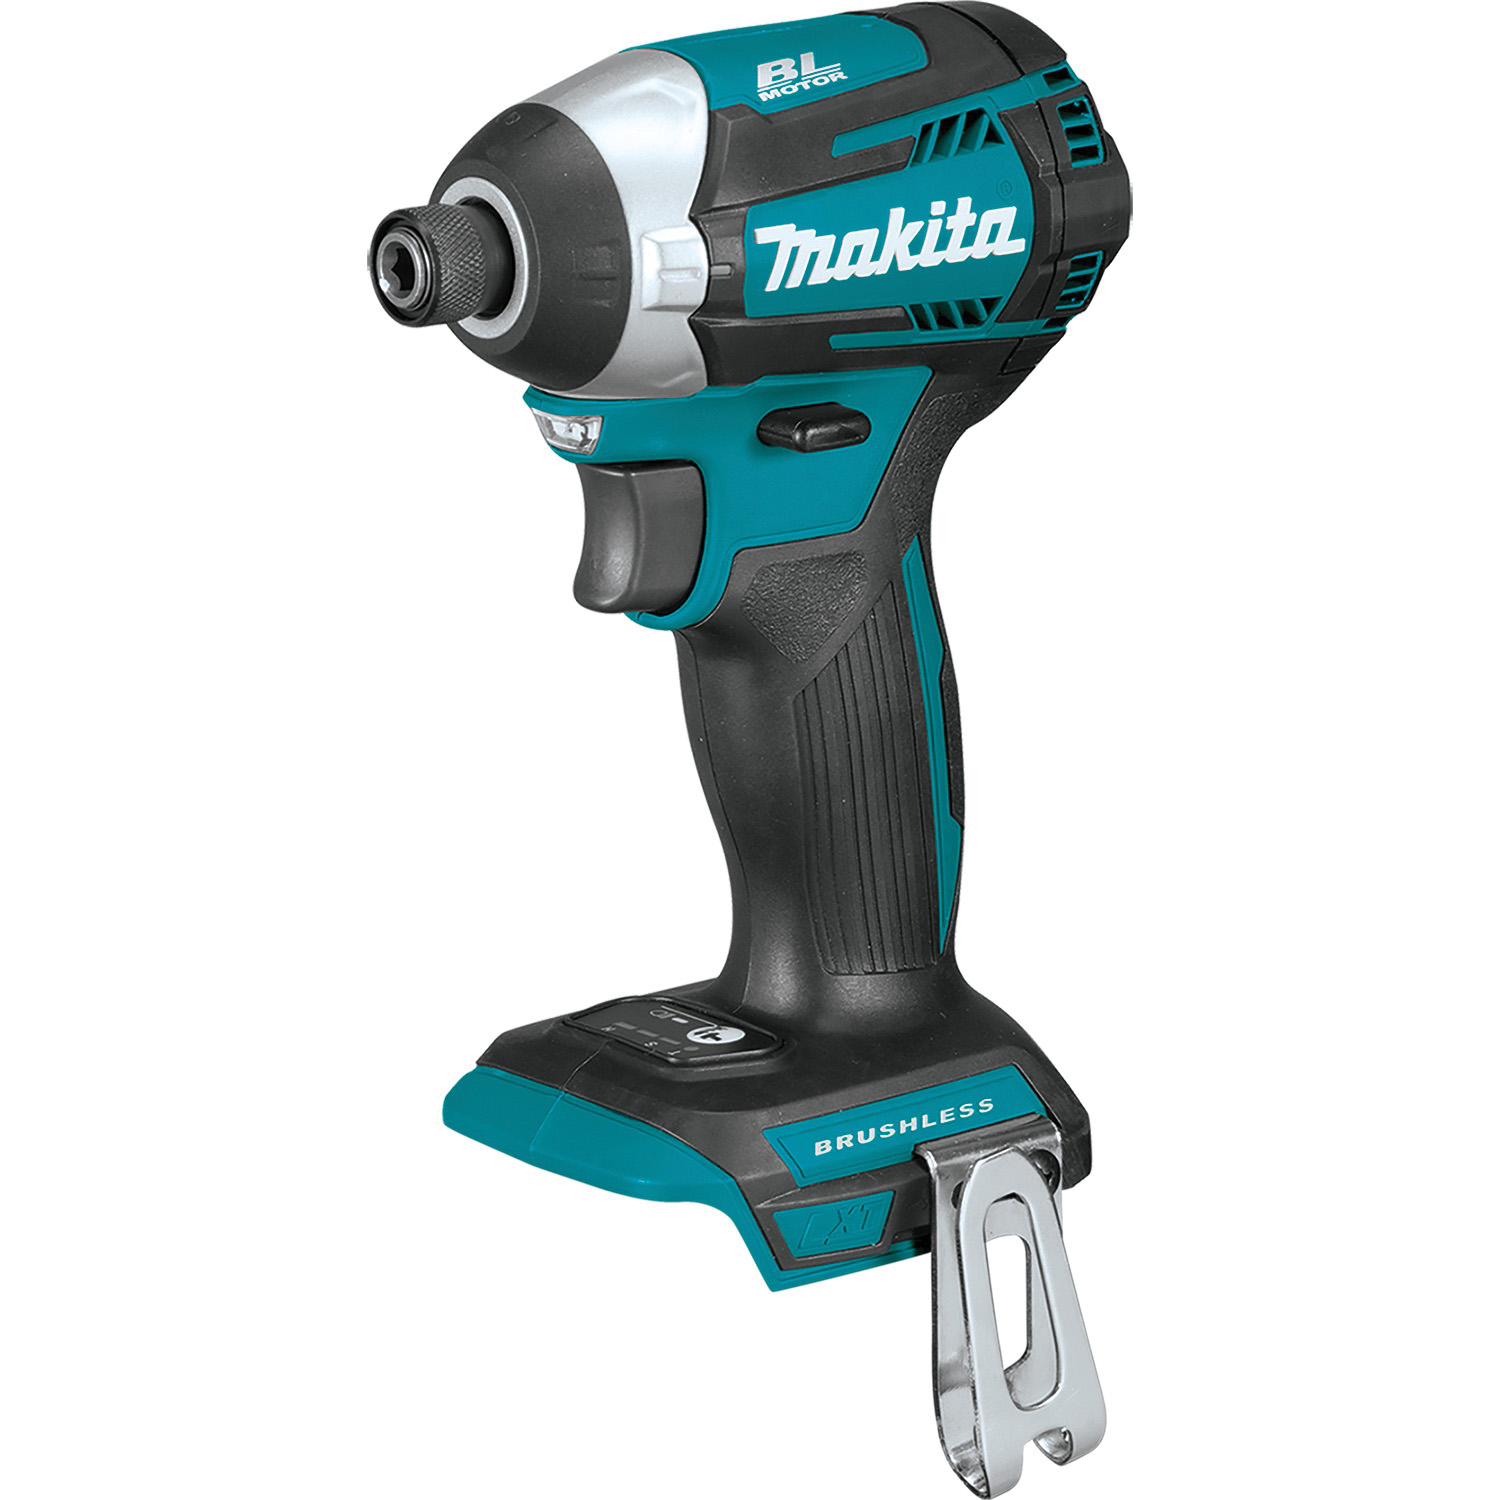 Picture of Makita XDT14Z Brushless Impact Driver, Bare Tool, 18 V Battery, 1/4 in Drive, Hex Drive, 0 to 3800 ipm IPM